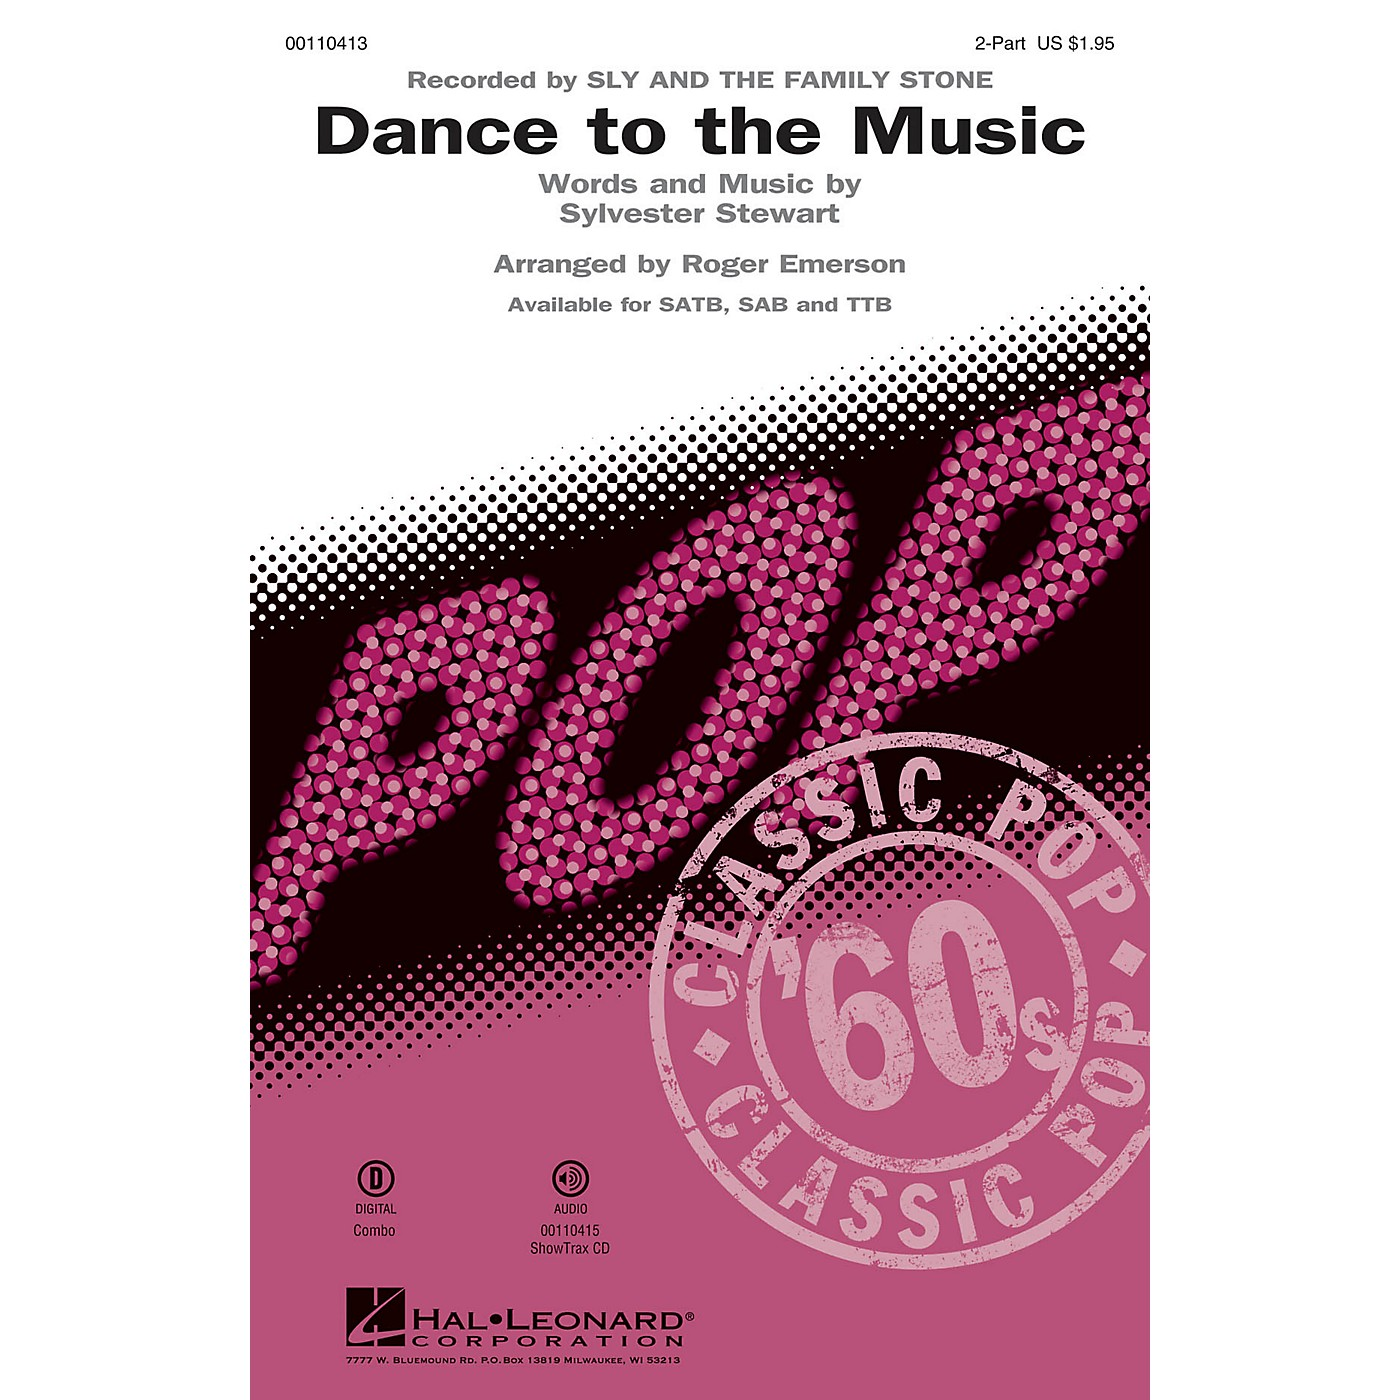 Hal Leonard Dance to the Music (2-Part Mixed) 2-Part by Sly and the Family Stone arranged by Roger Emerson thumbnail